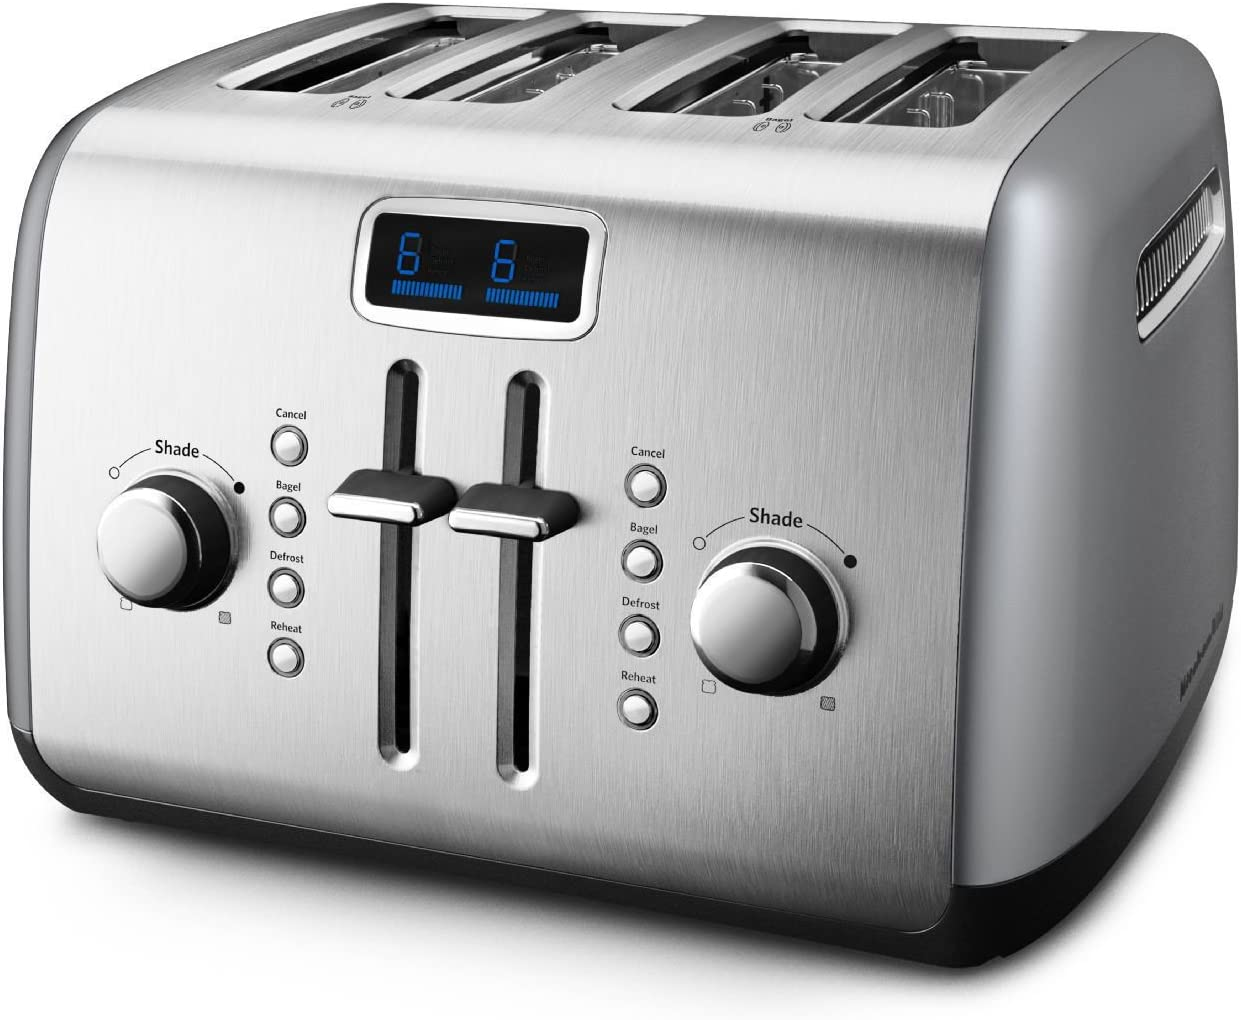 KitchenAid KMT422CU 4-Slice High-Lift Lever Digital Display Toaster, Contour Silver (Renewed)